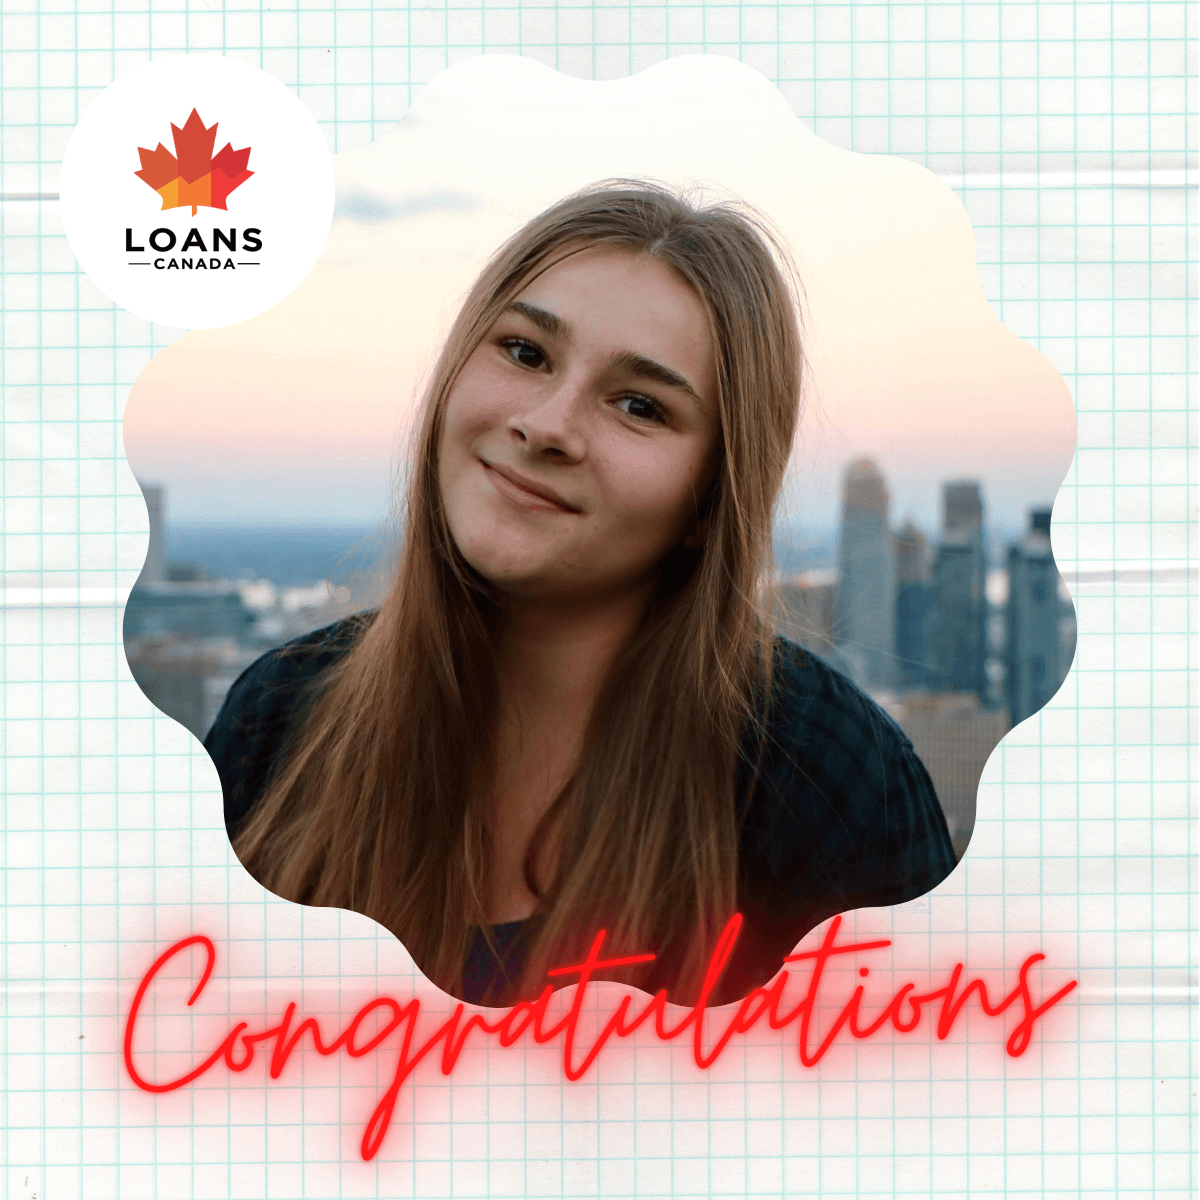 Announcing The First Winner of Our Financial Literacy Scholarship